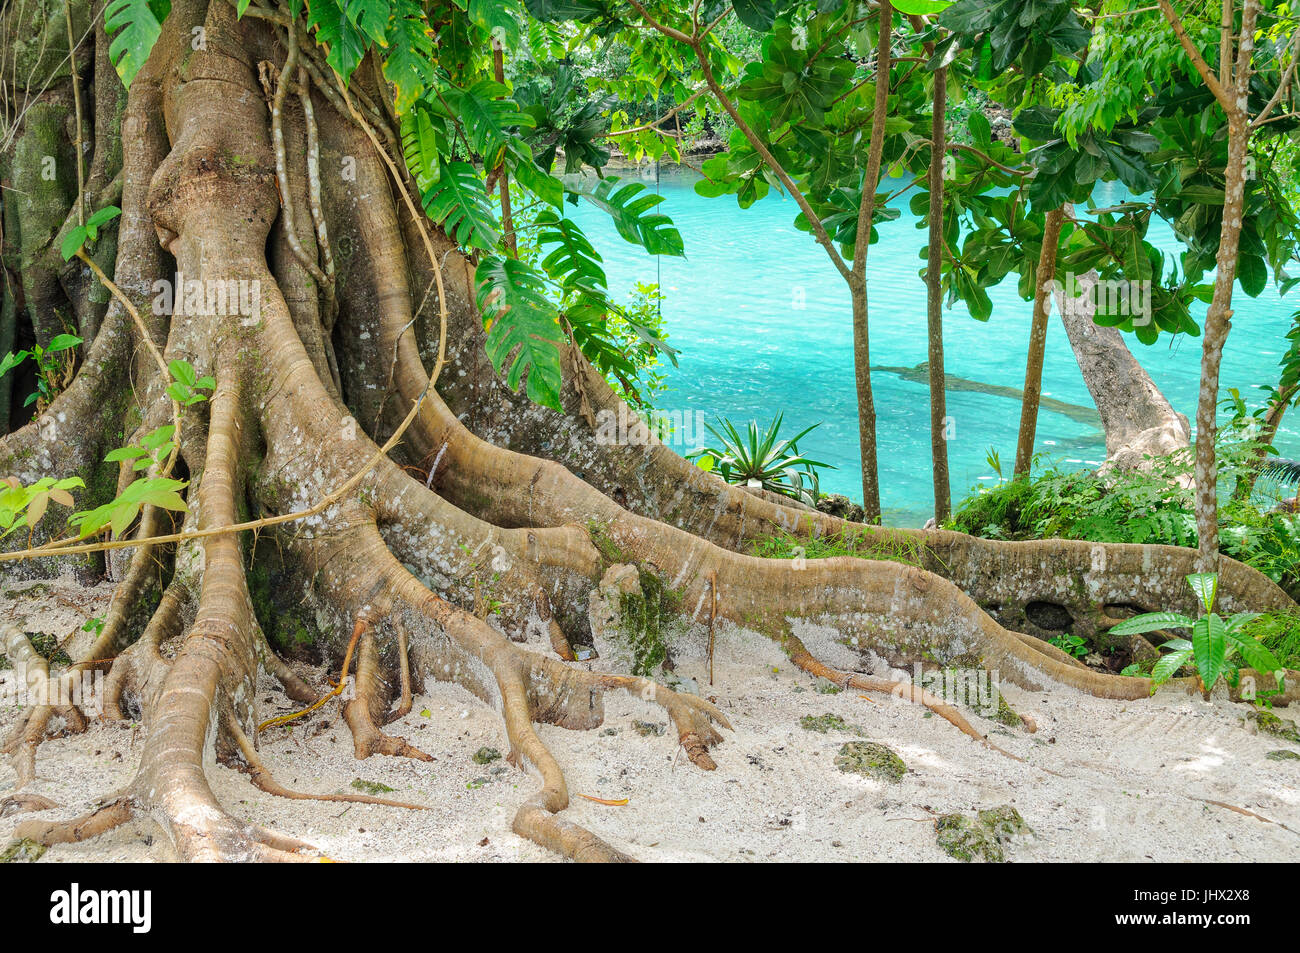 Giant roots at the Blue Lagoon - Efate Island, Vanuatu - Stock Image